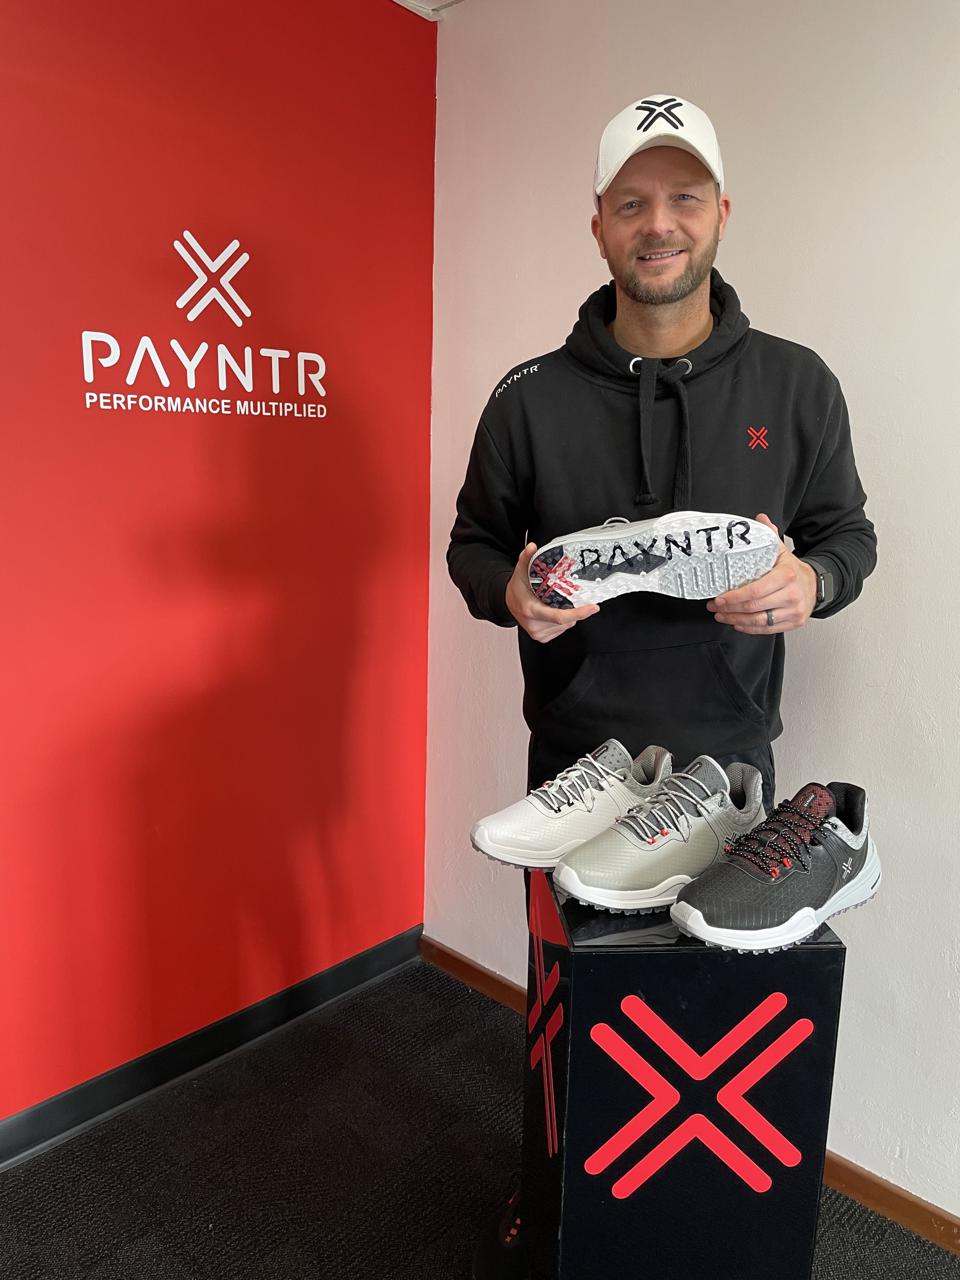 David Payntr holds his company's debut golf shoe